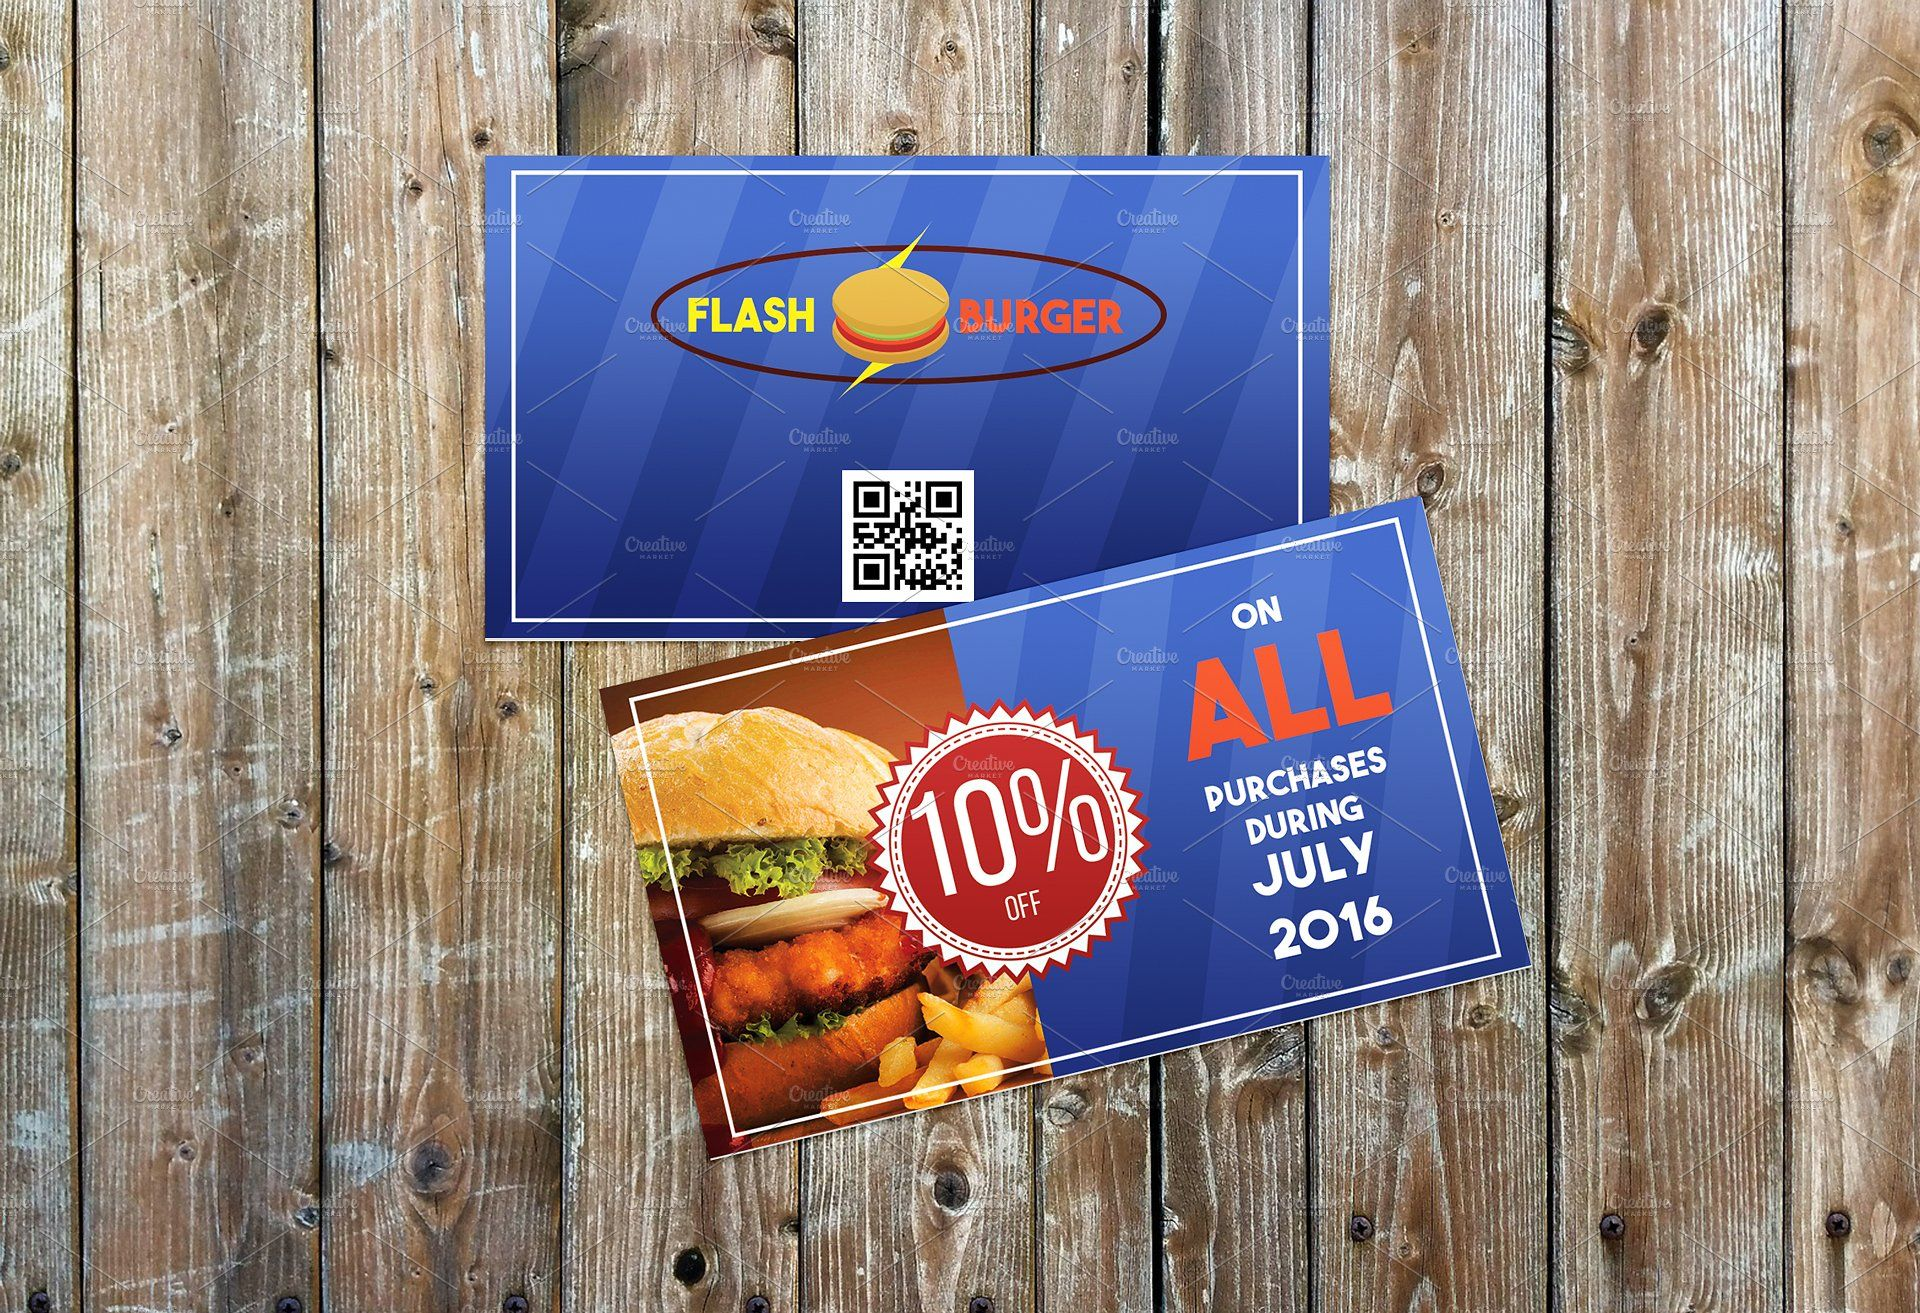 fast food restaurant coupon cards 3 coupon voucher styles